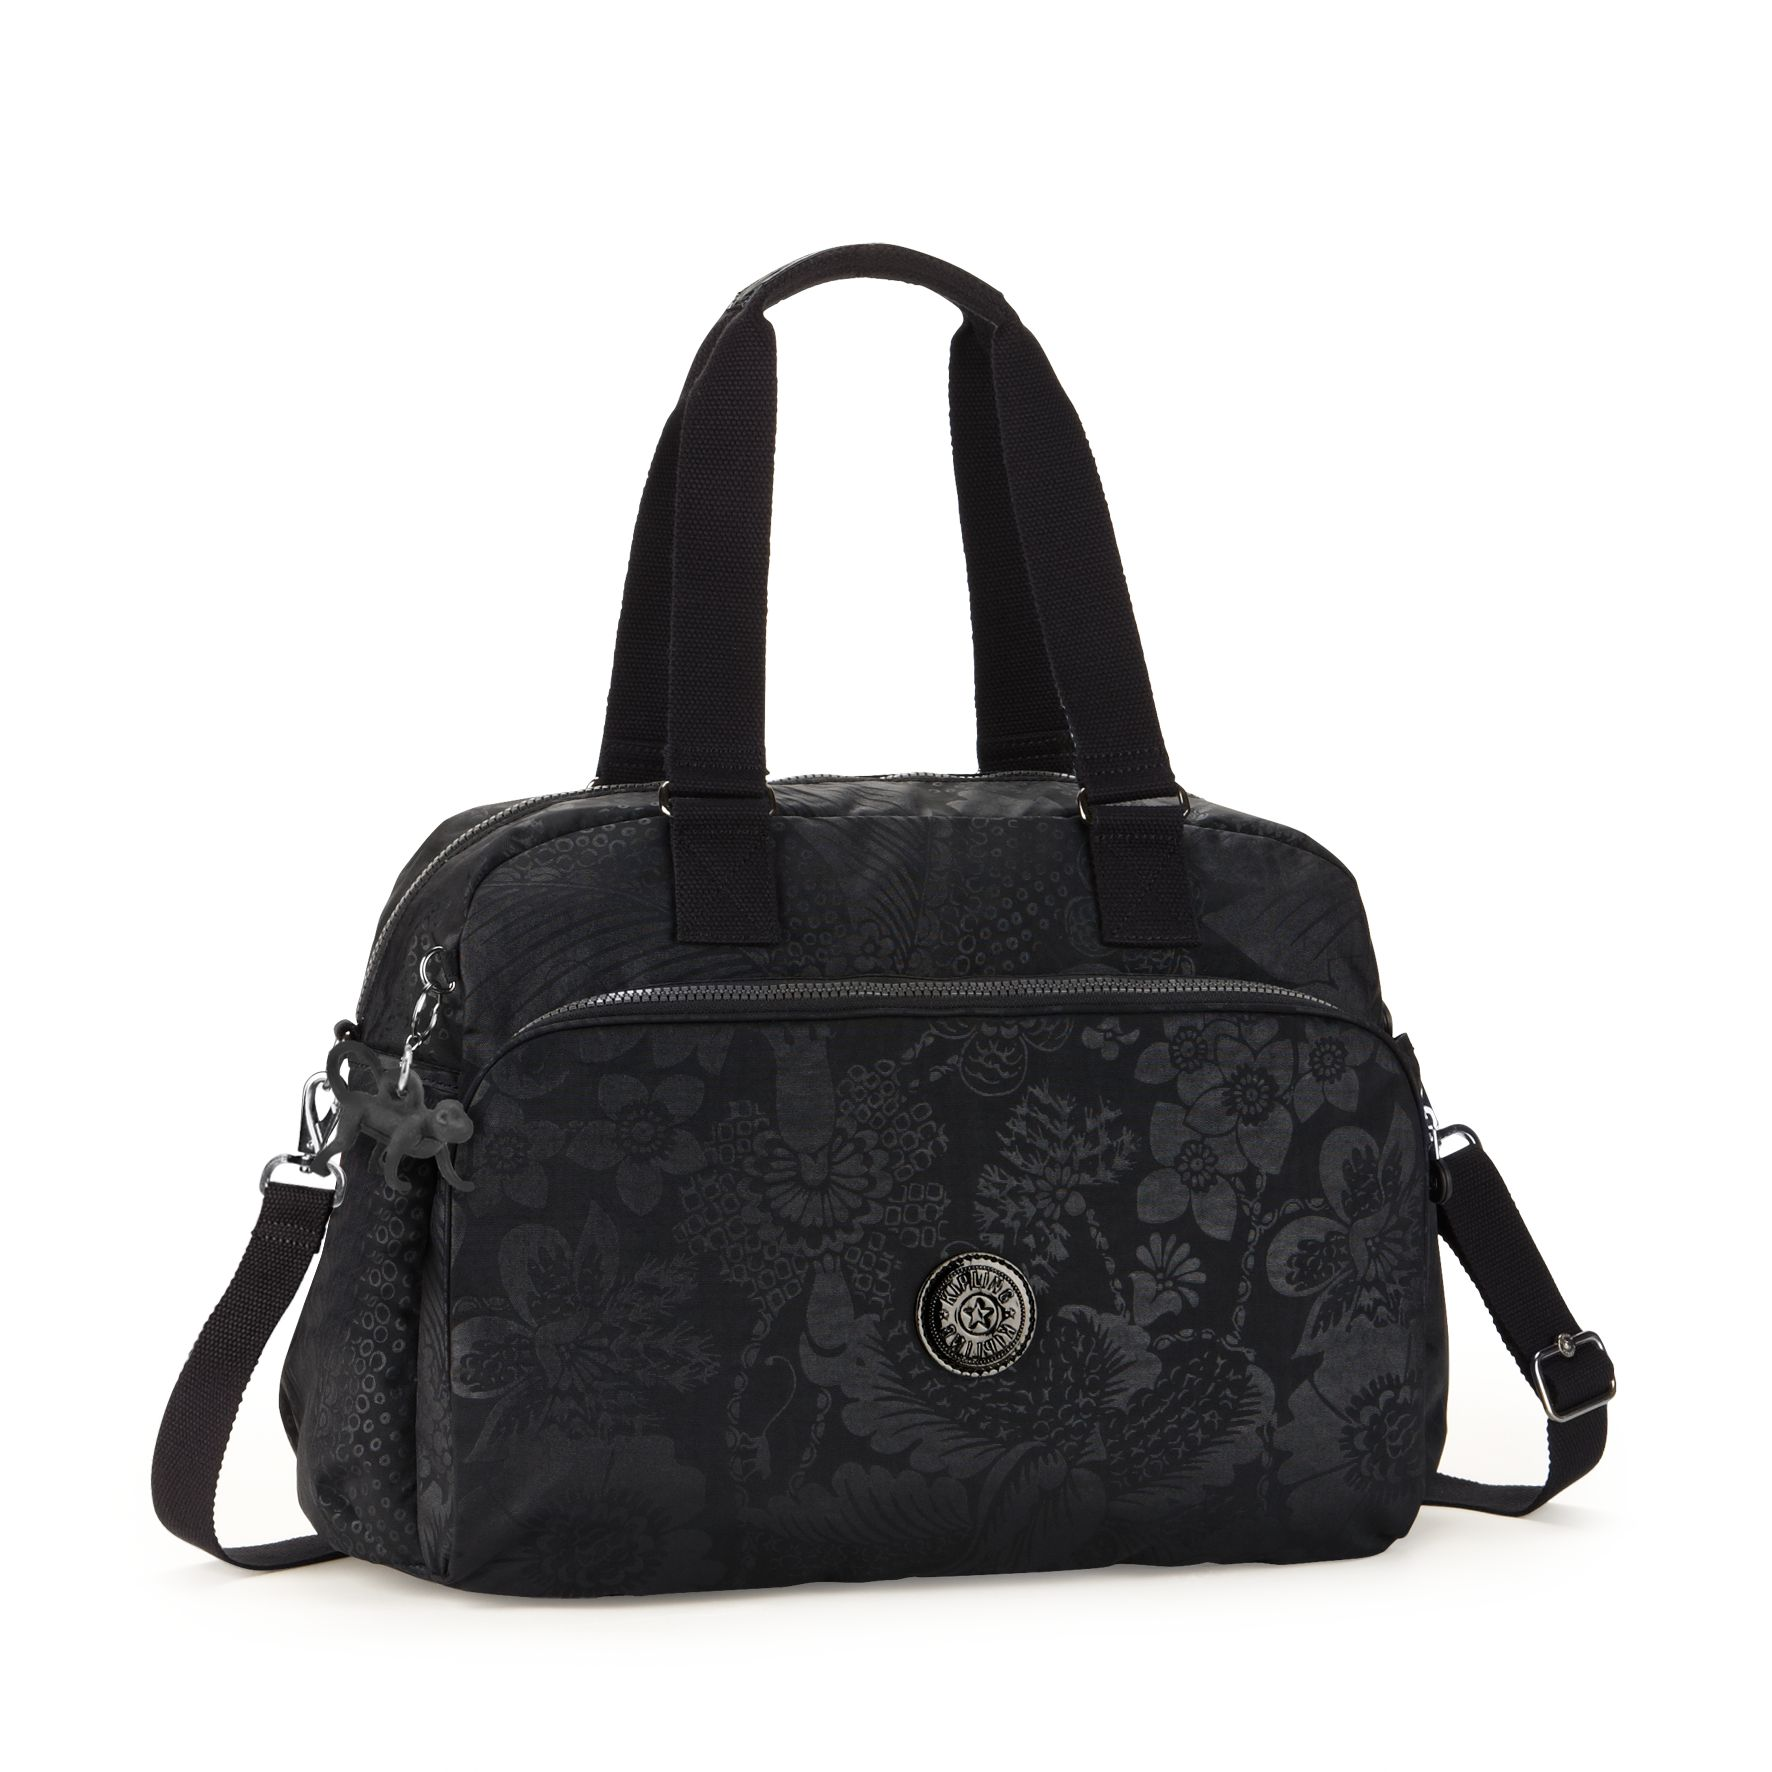 July large shoulder bag